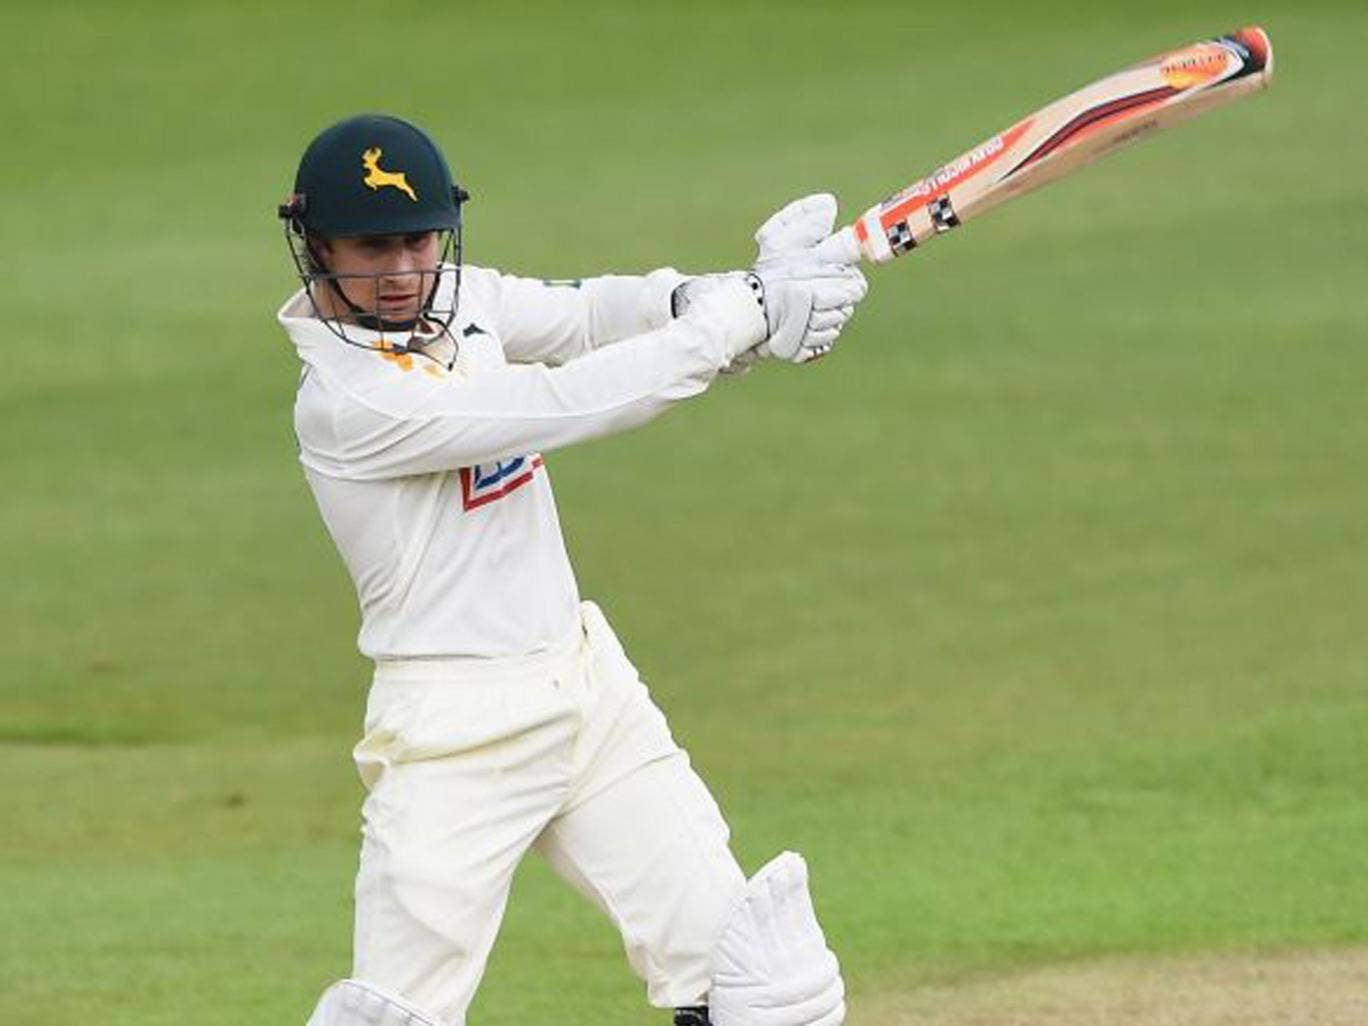 James Taylor was only given two Tests against South Africa to stake his claim for an England place played two Tests in 2012, scored 96 yesterday with Test places up for grabs